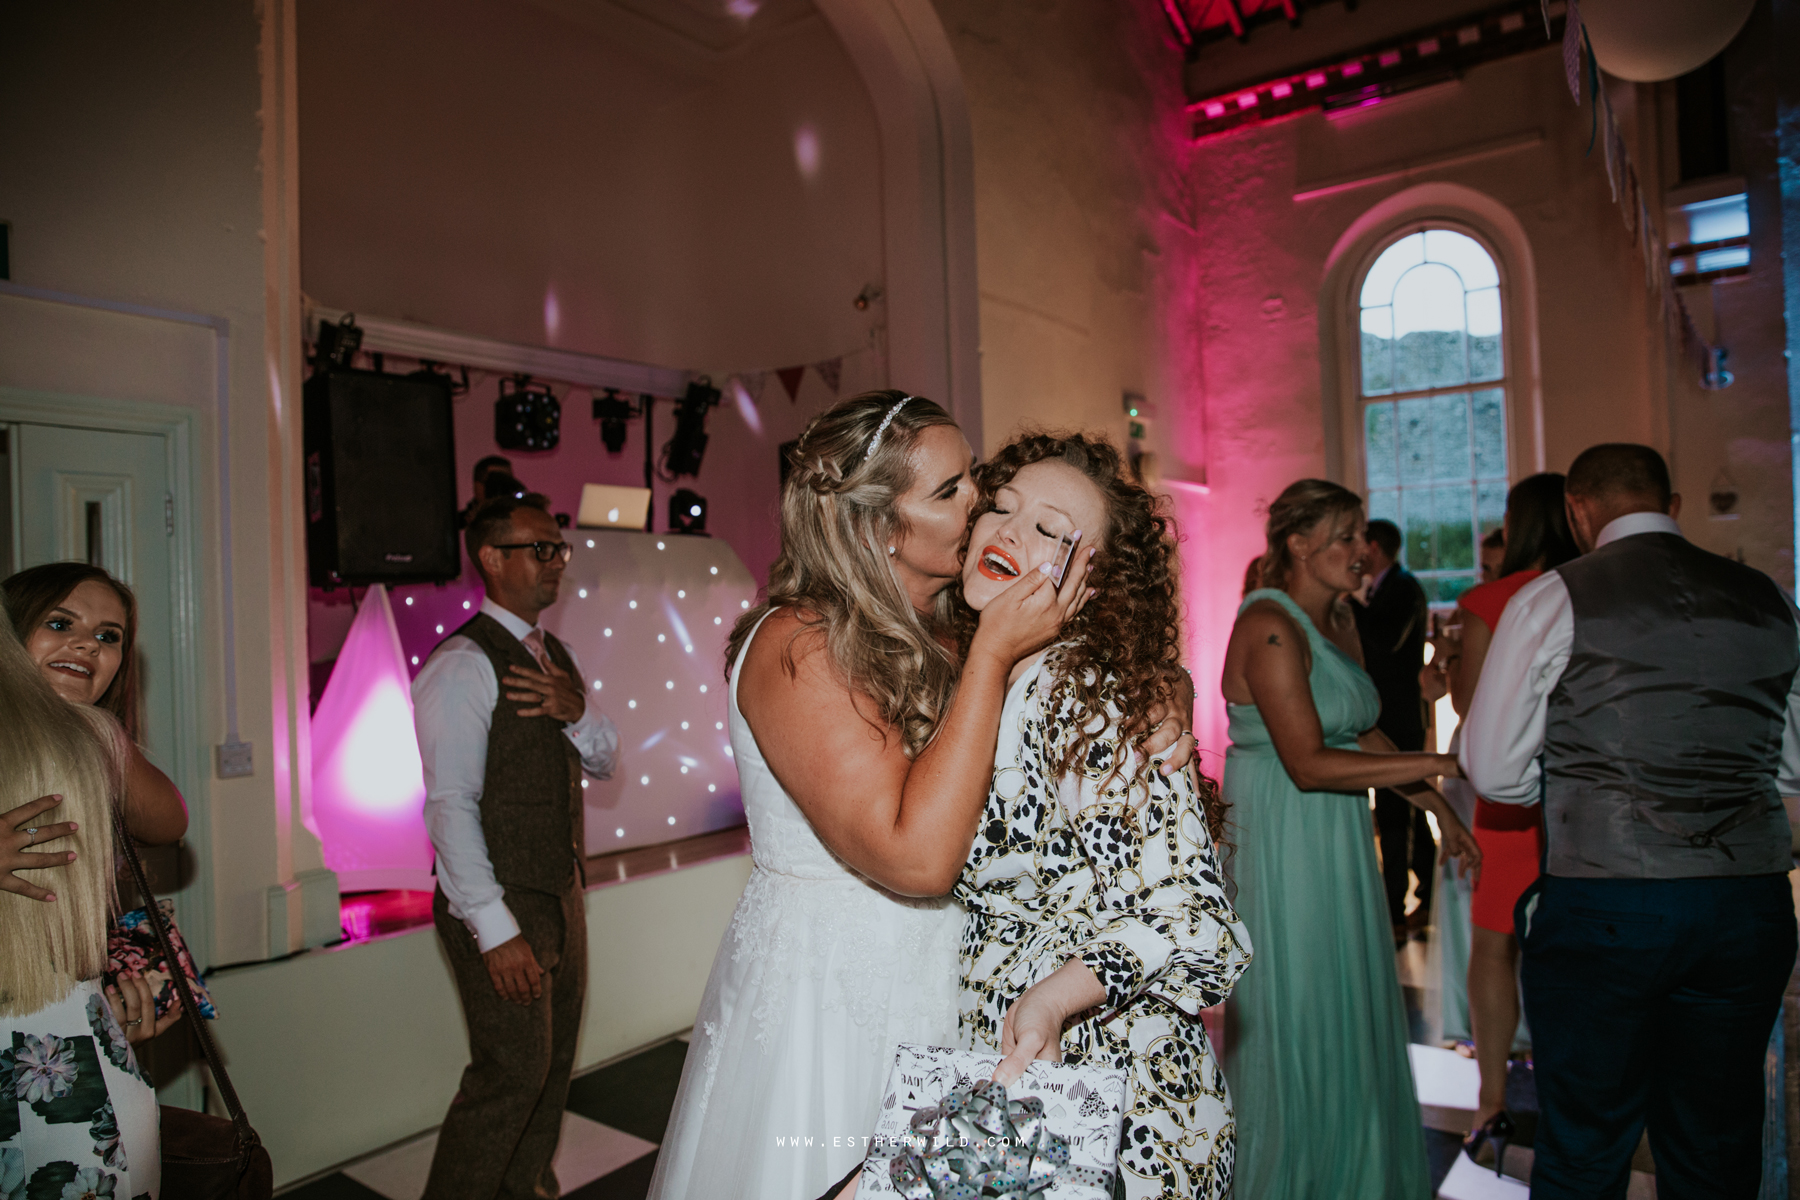 Swaffham_Wedding_Castle_Acre_Norfolk_Esther_Wild_Photographer_Wedding_Photography_3R8A2382.jpg